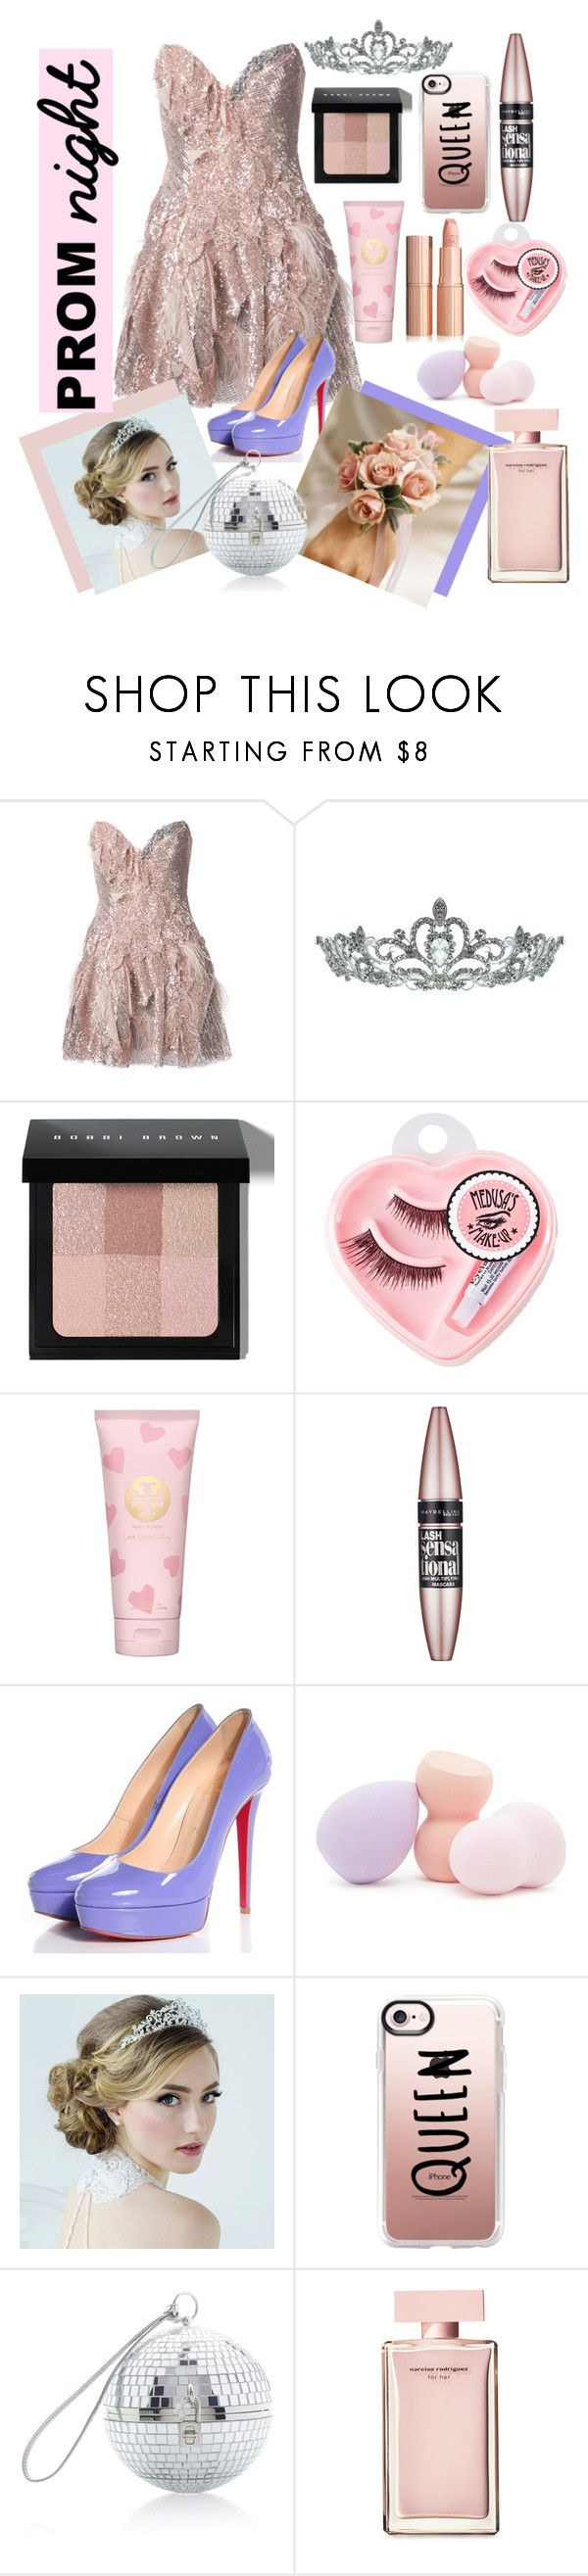 """""""Prom Queen"""" by mydreamingcloset ❤ liked on Polyvore featuring Trash-Couture, Kate Marie, Bobbi Brown Cosmetics, Medusa's Makeup, Tory Burch, Maybelline, Christian Louboutin, Forever 21, Casetify and Dolce&Gabbana"""